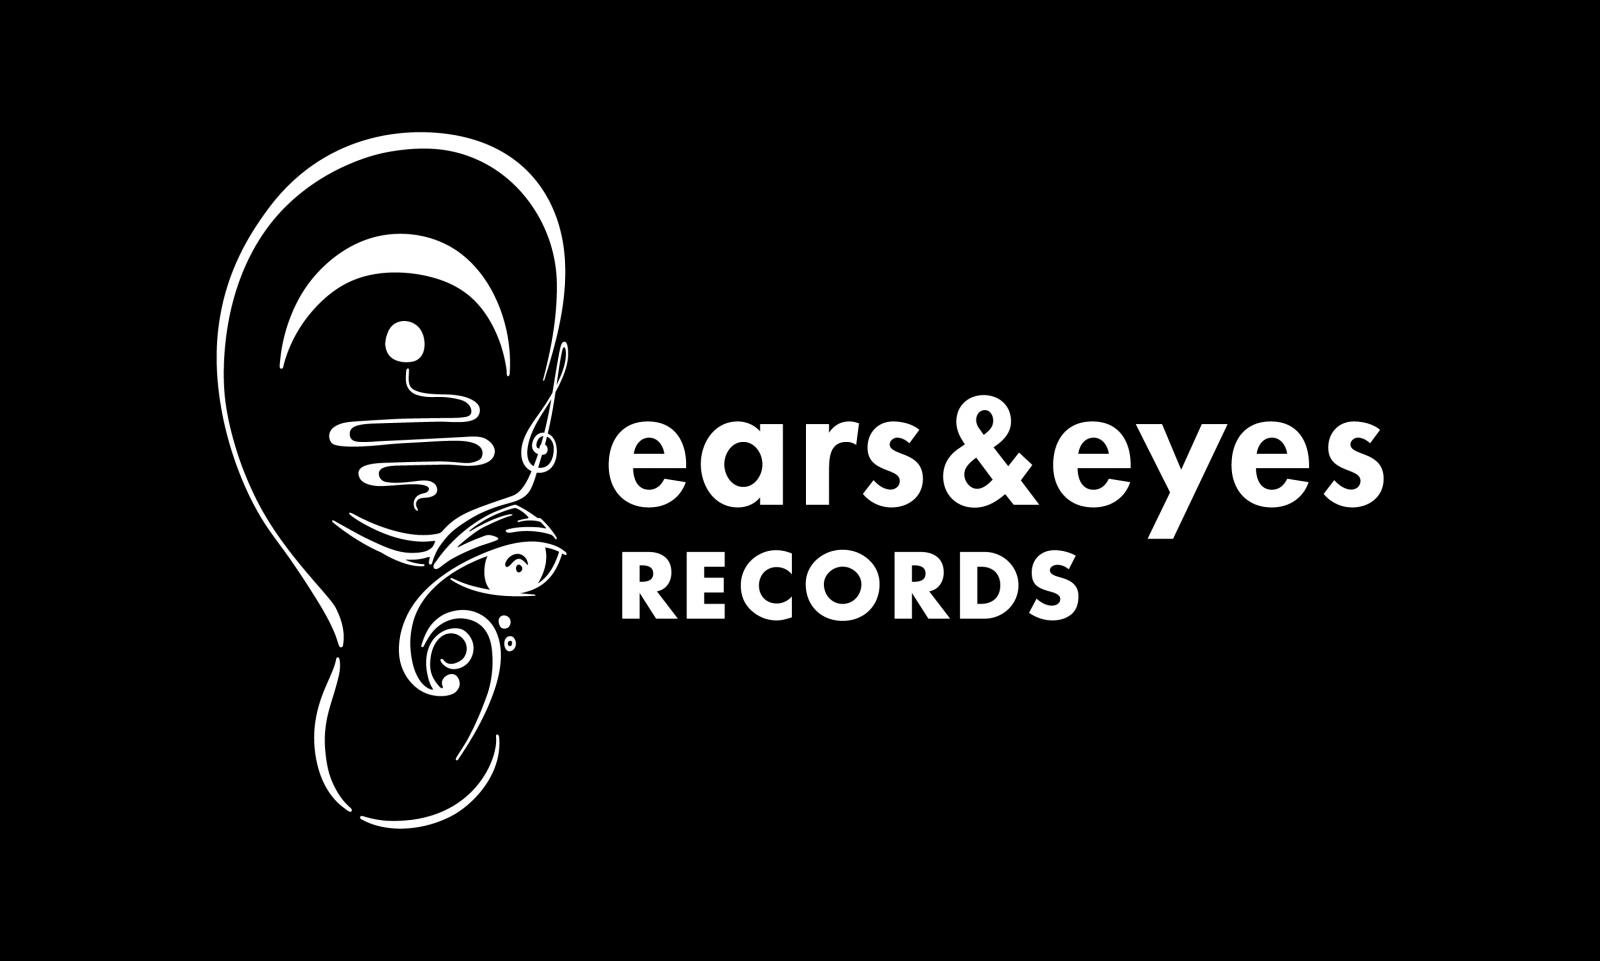 ears&eyes Records: experiential music label releases fresh aural experiments! Chicago born, NOLA roots, New York, Bay Area, Belgium, Croatia, Buenos Aires branches.